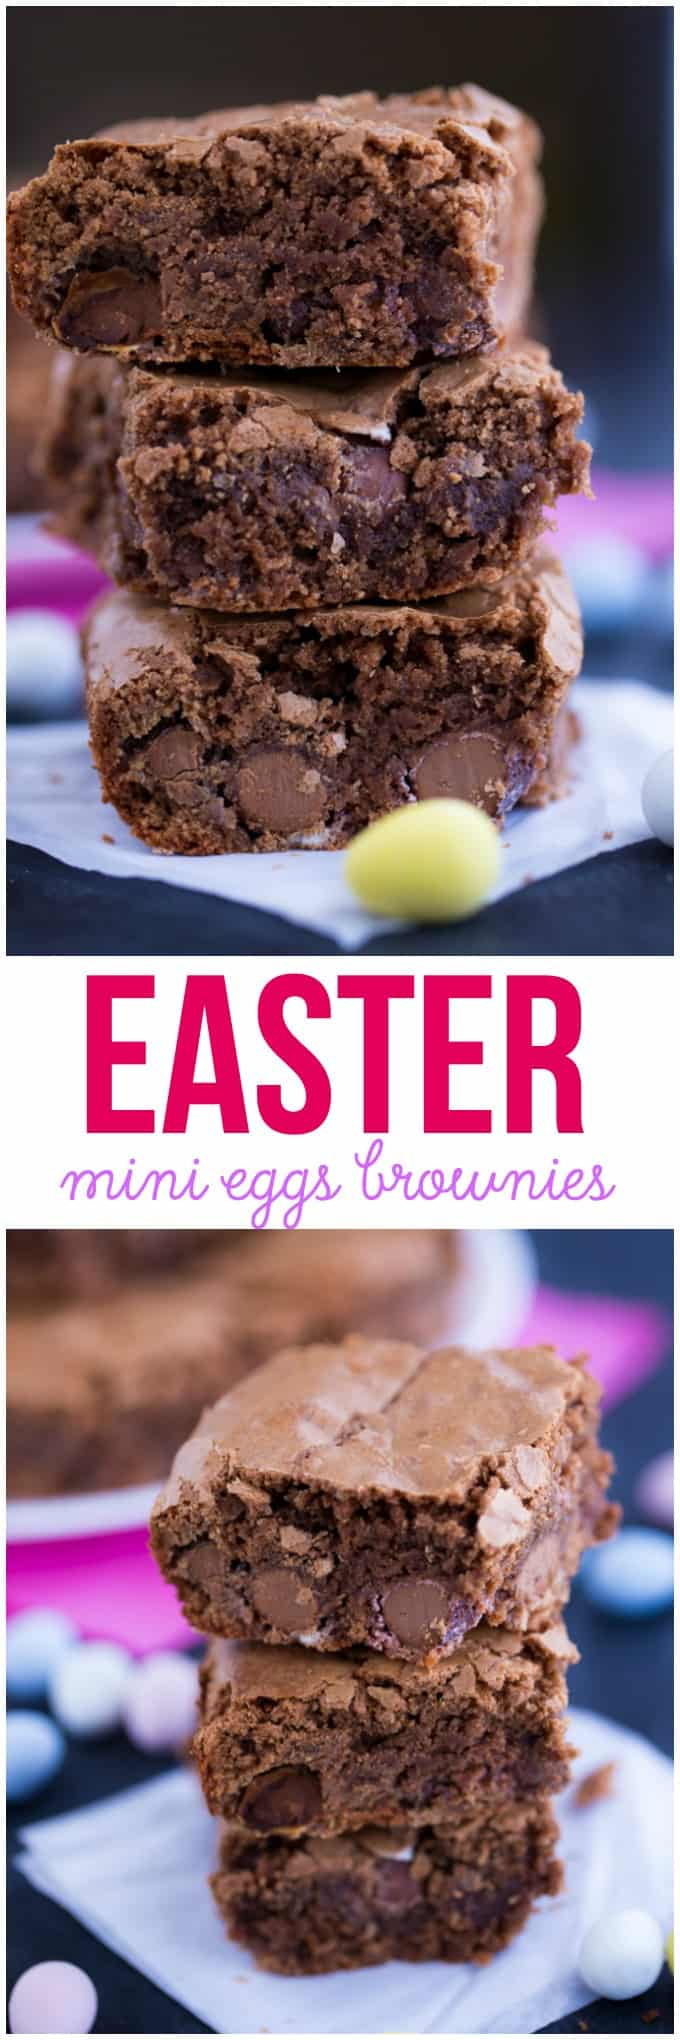 Easter Mini Eggs Brownies - Add a little Easter fun to your next batch of brownies! This recipe is always a hit with my family.